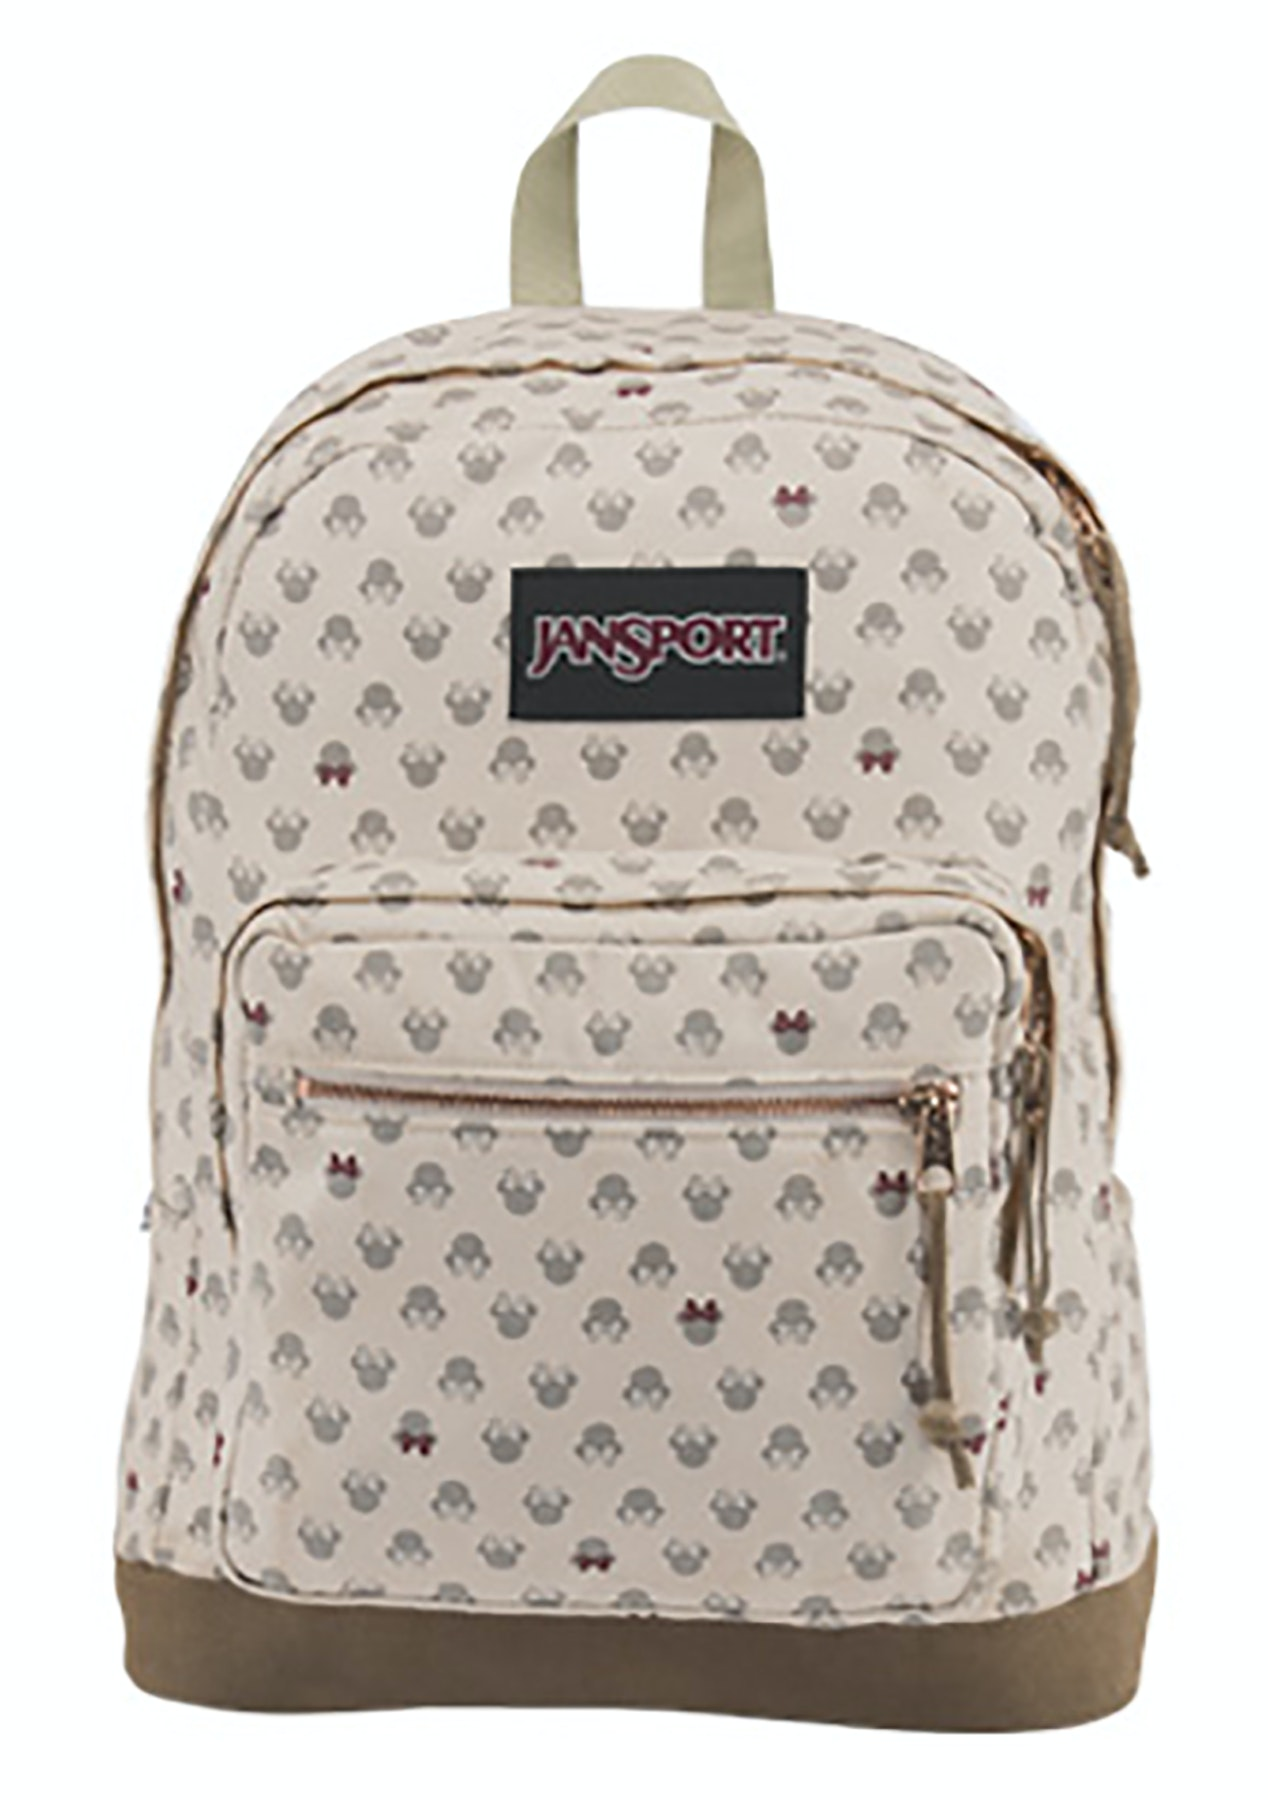 7138652cded Jansport - Disney Right Pack Expressions - Luxe Minnie - Jewellery    Accessories Garage Sale - Onceit